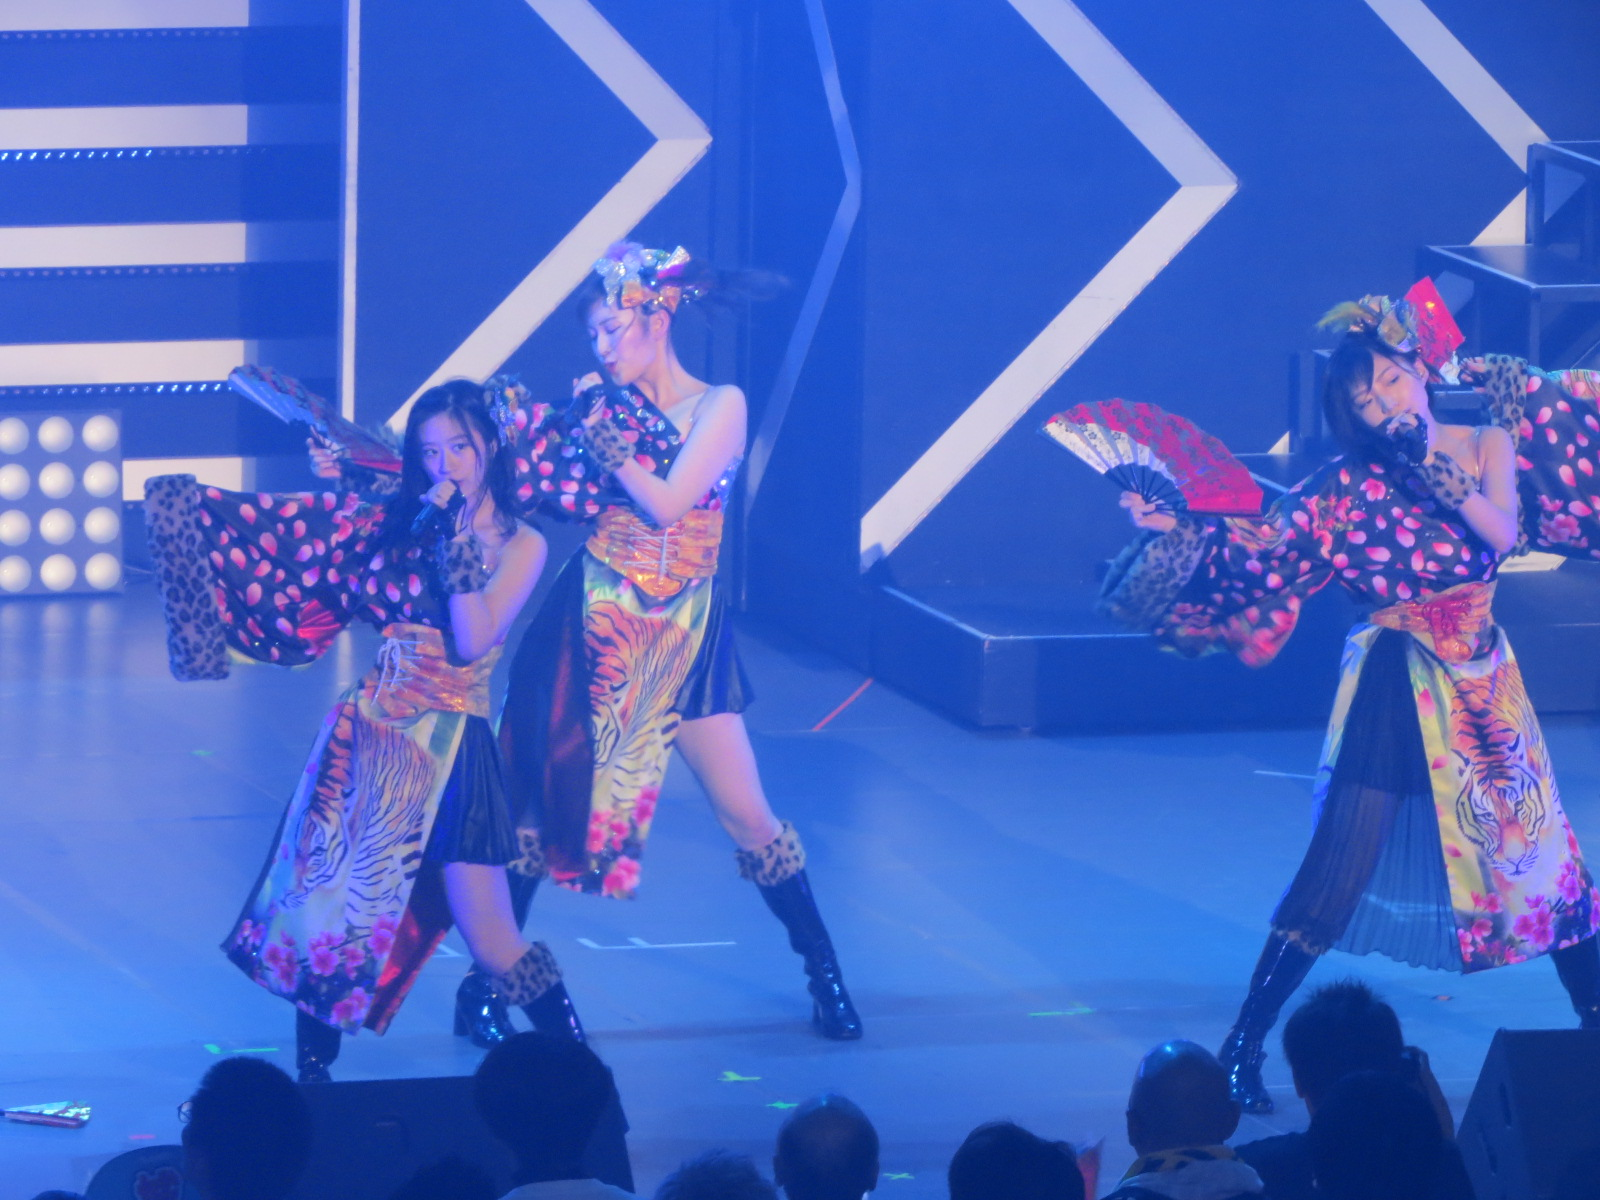 NMB48 LIVE TOUR 2018 in Summer・石川公演の画像-025